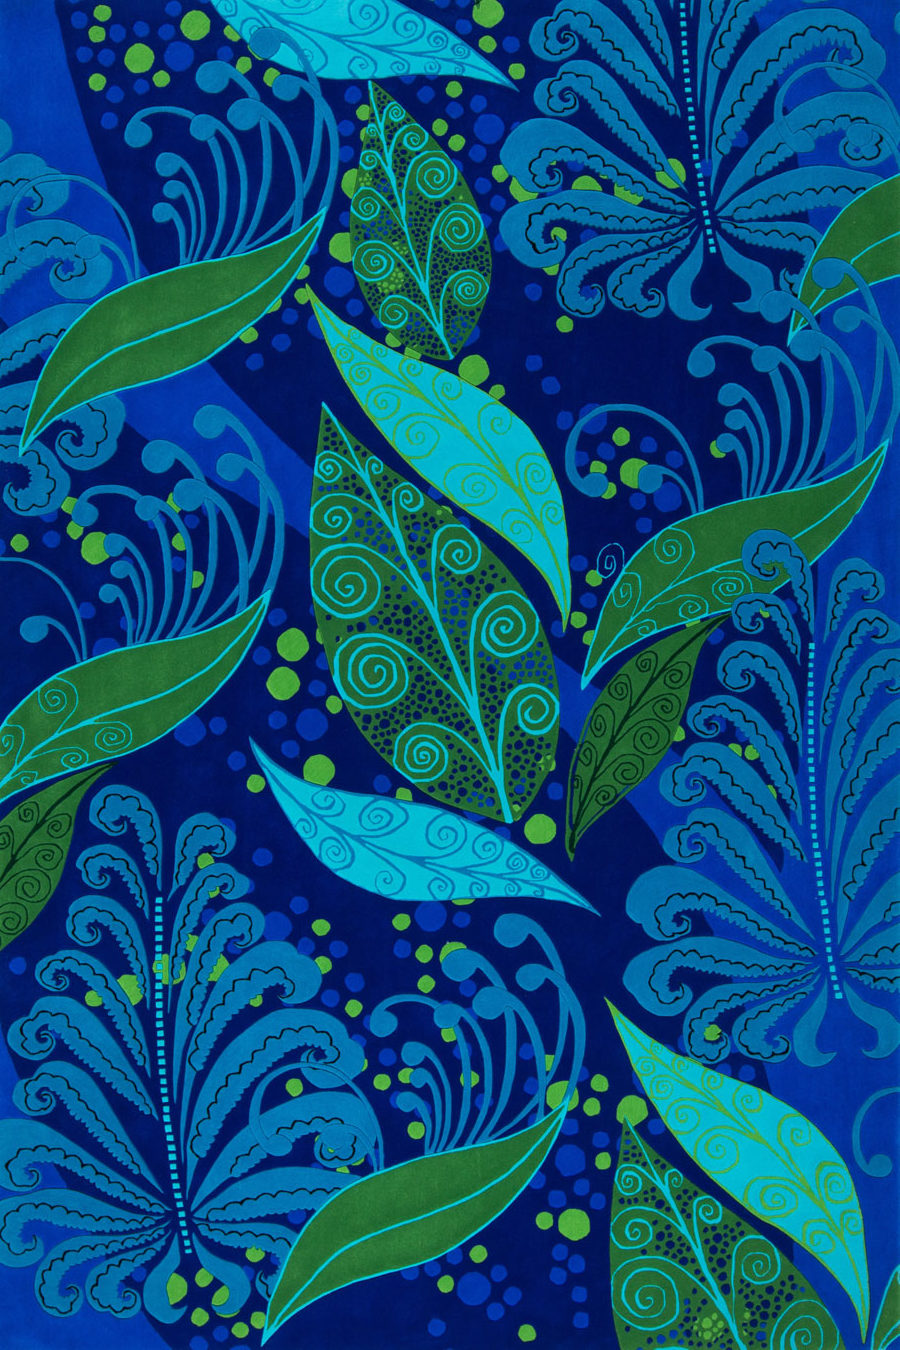 Overhead image of floral Night Garden rug by Romance Was Born in green and blue colour